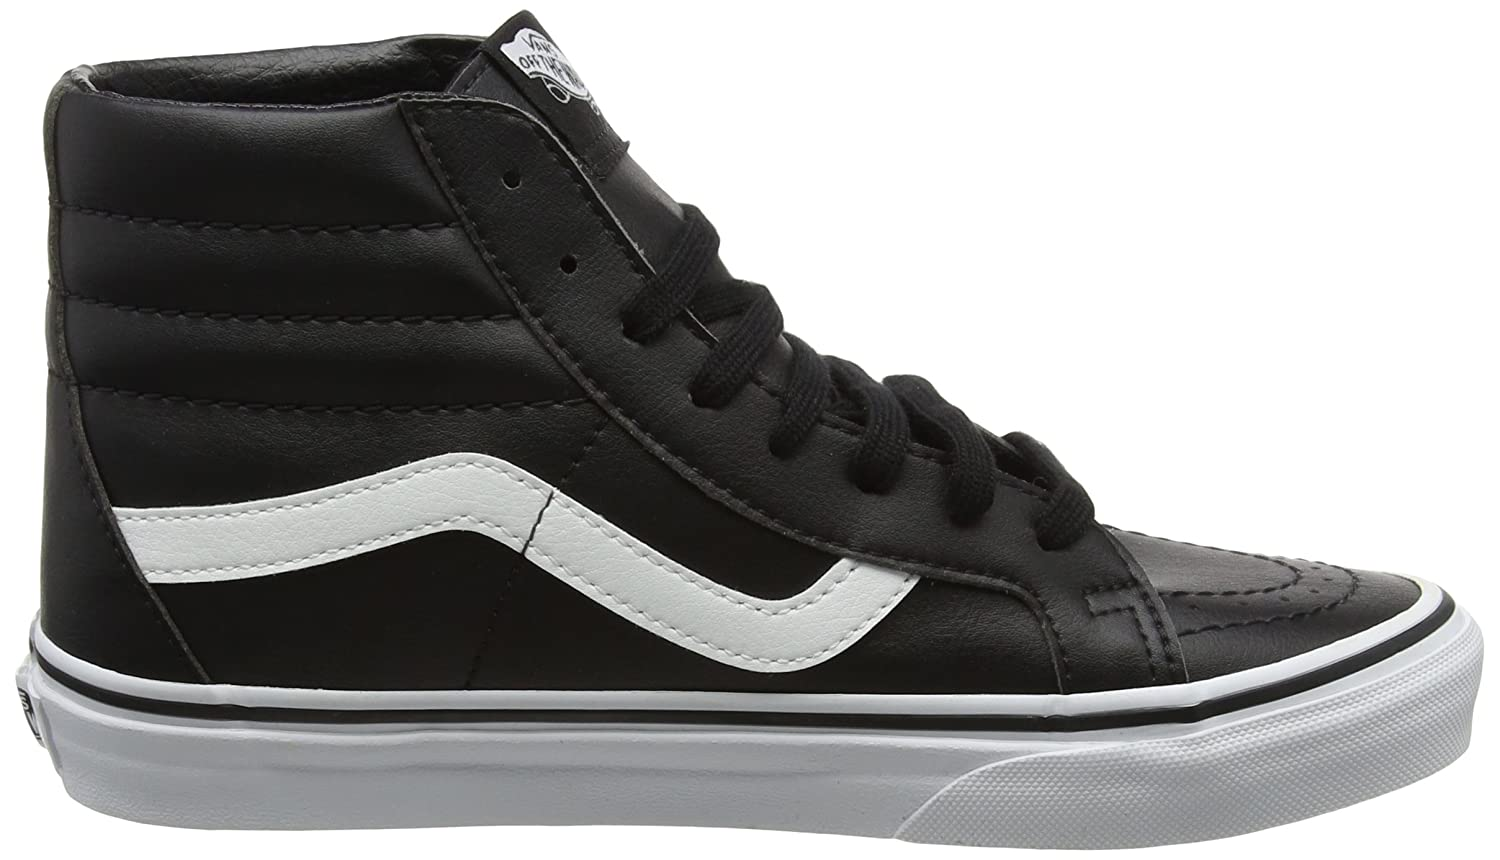 VANS MENS SK8 HI REISSUE LEATHER US|Black SHOES B01N7G750N 8 D(M) US|Black LEATHER b21e20